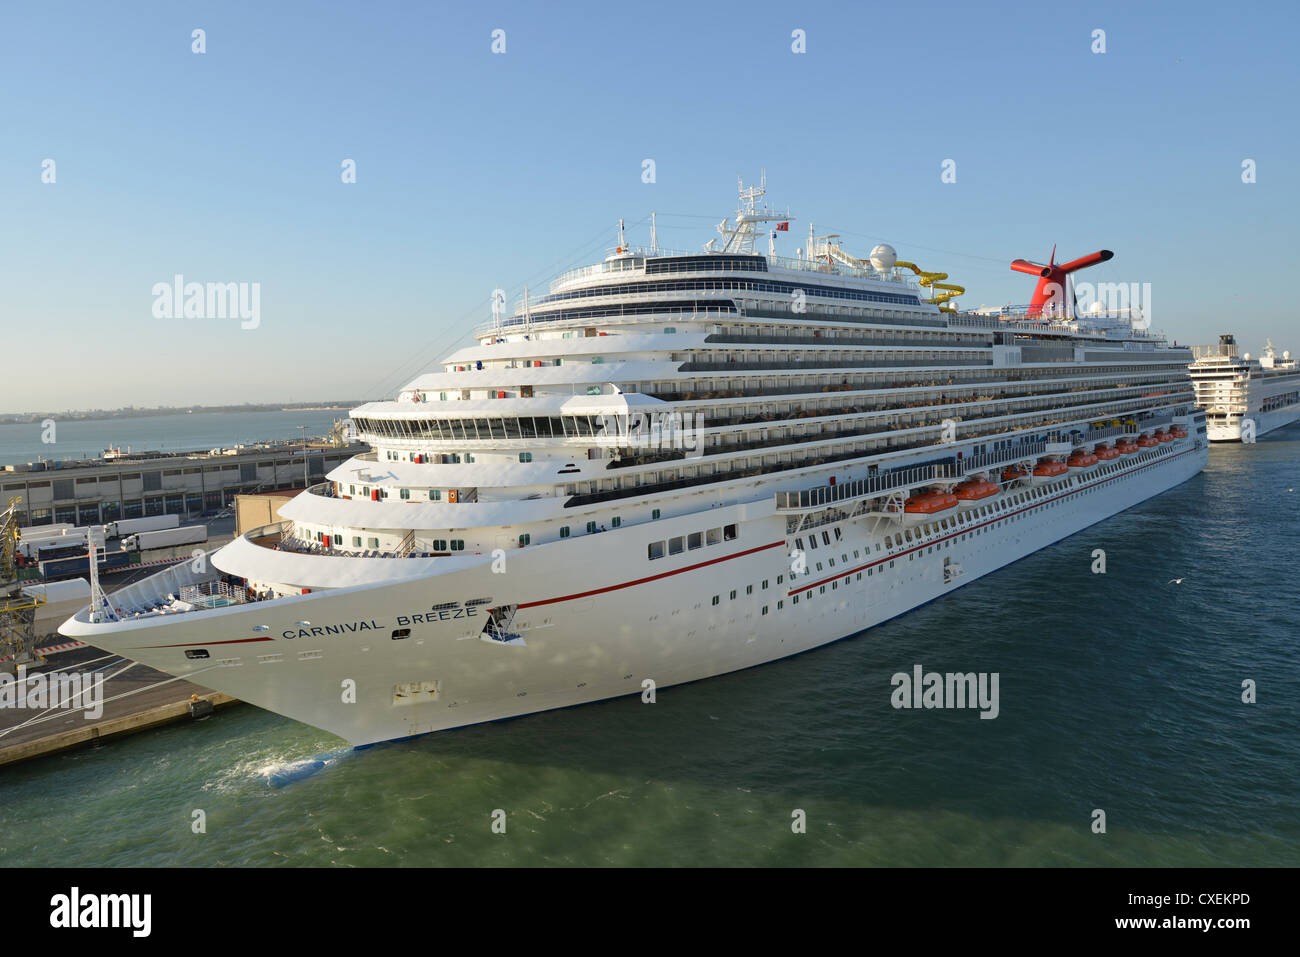 Carnival Cruise Lines Carnival Breeze Cruise Ship Docked At - How old are carnival cruise ships